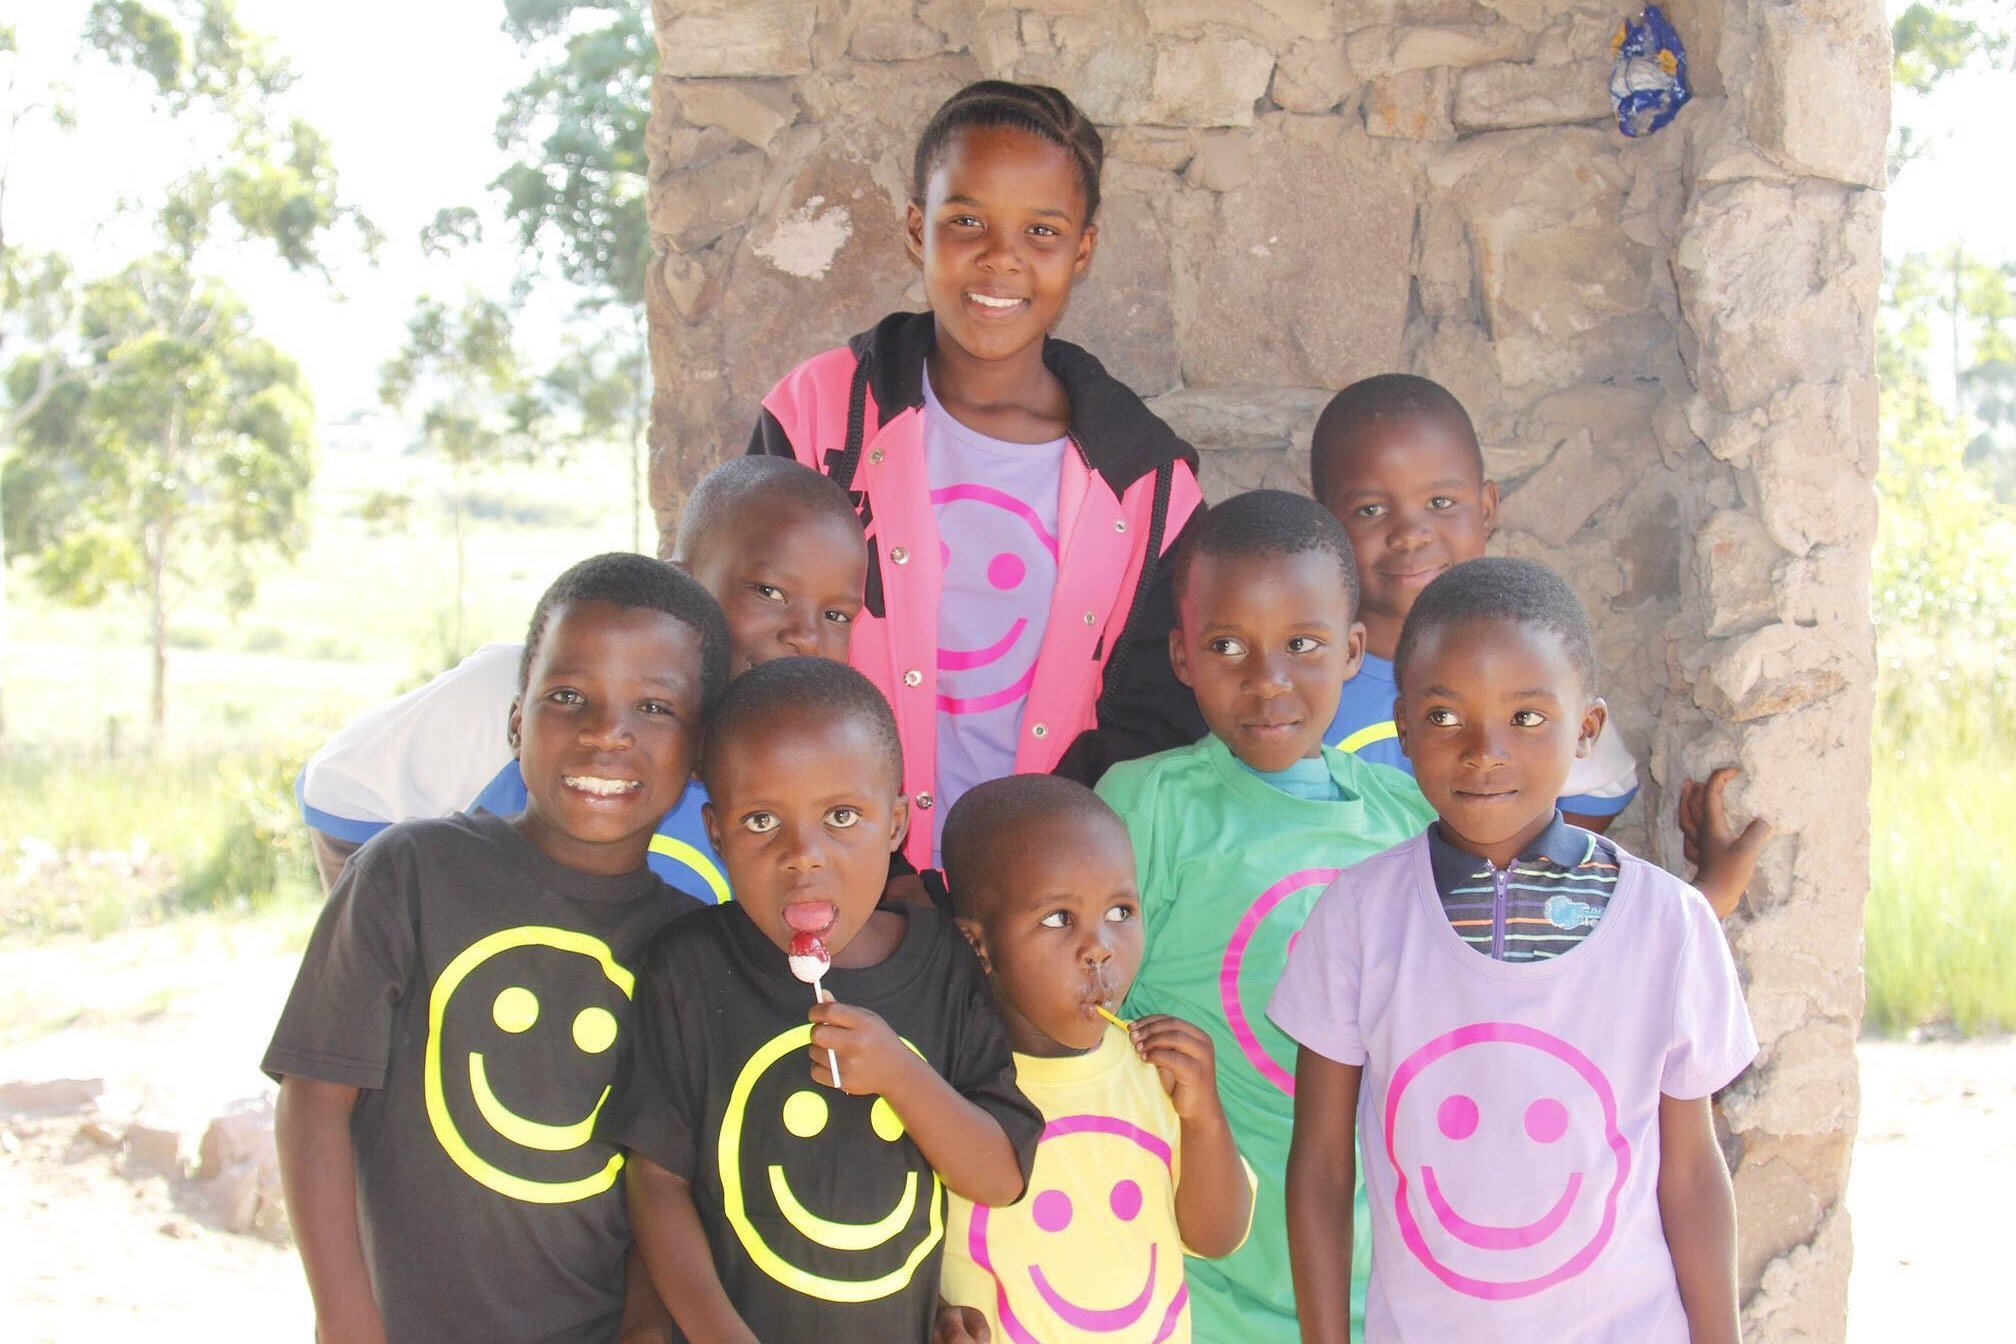 Some of the children in Ezphezi area, with our smiley-shirt